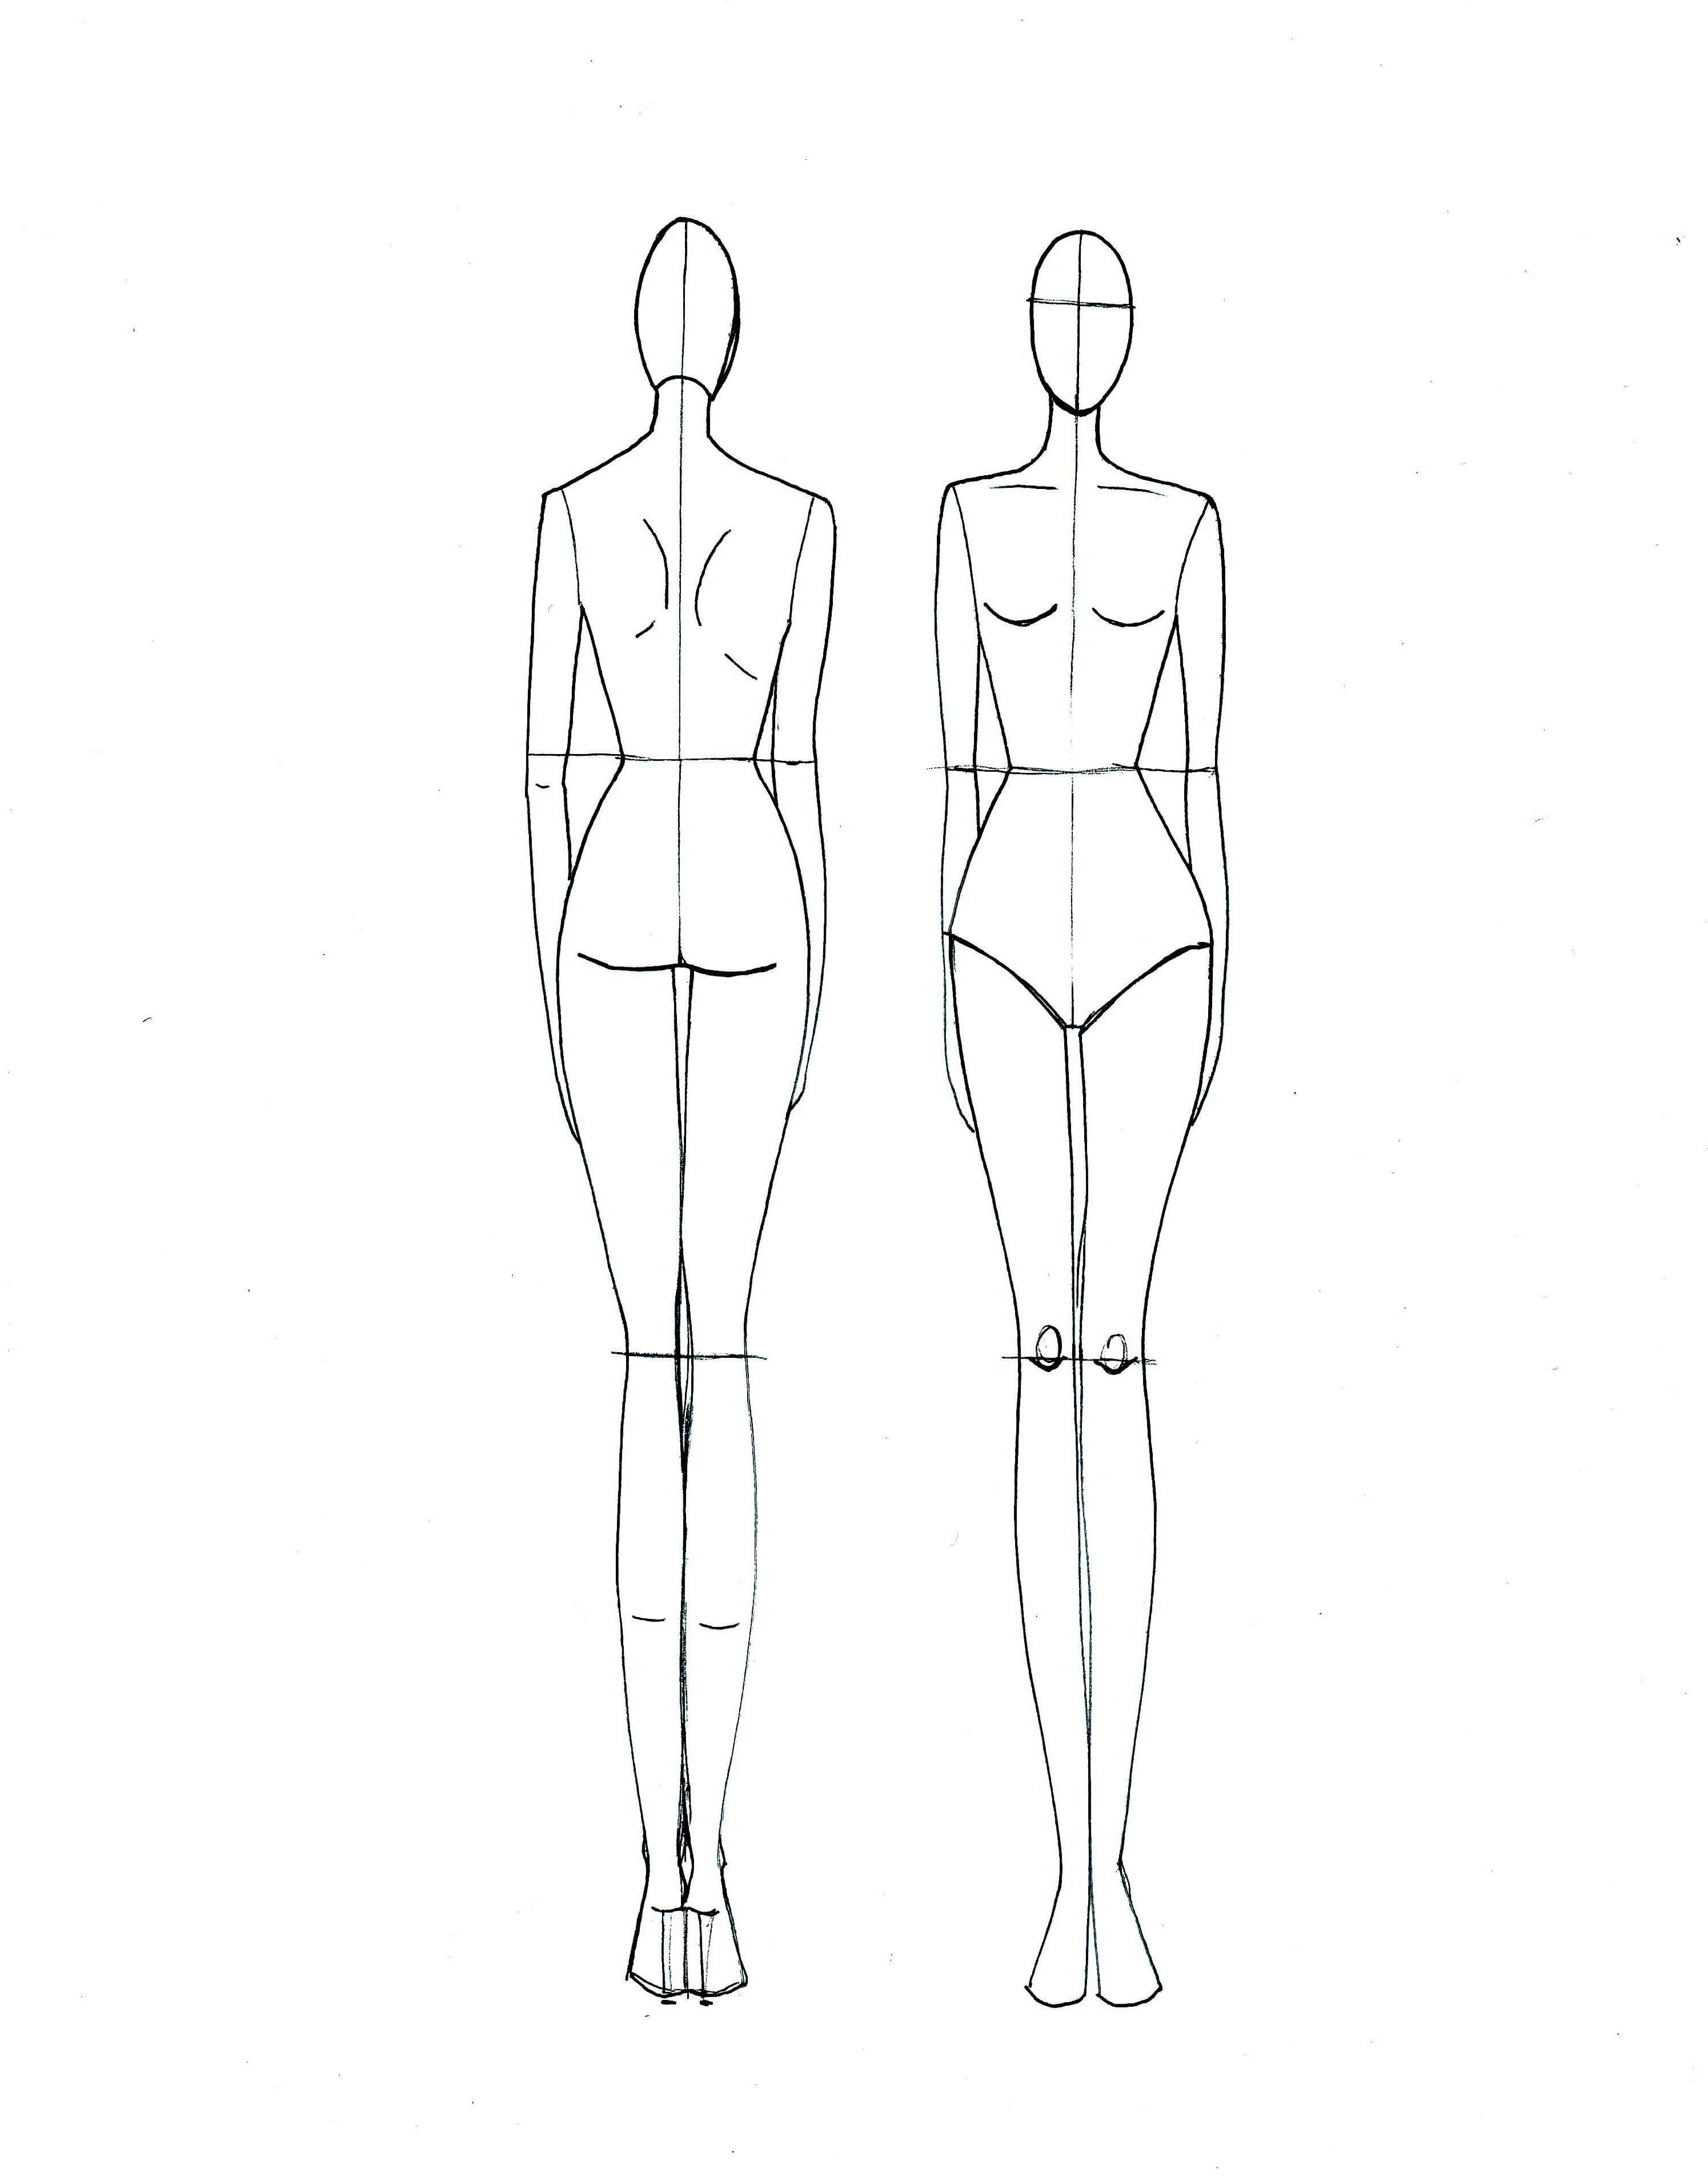 Clothing Model Sketch At Paintingvalley   Explore intended for Blank Model Sketch Template